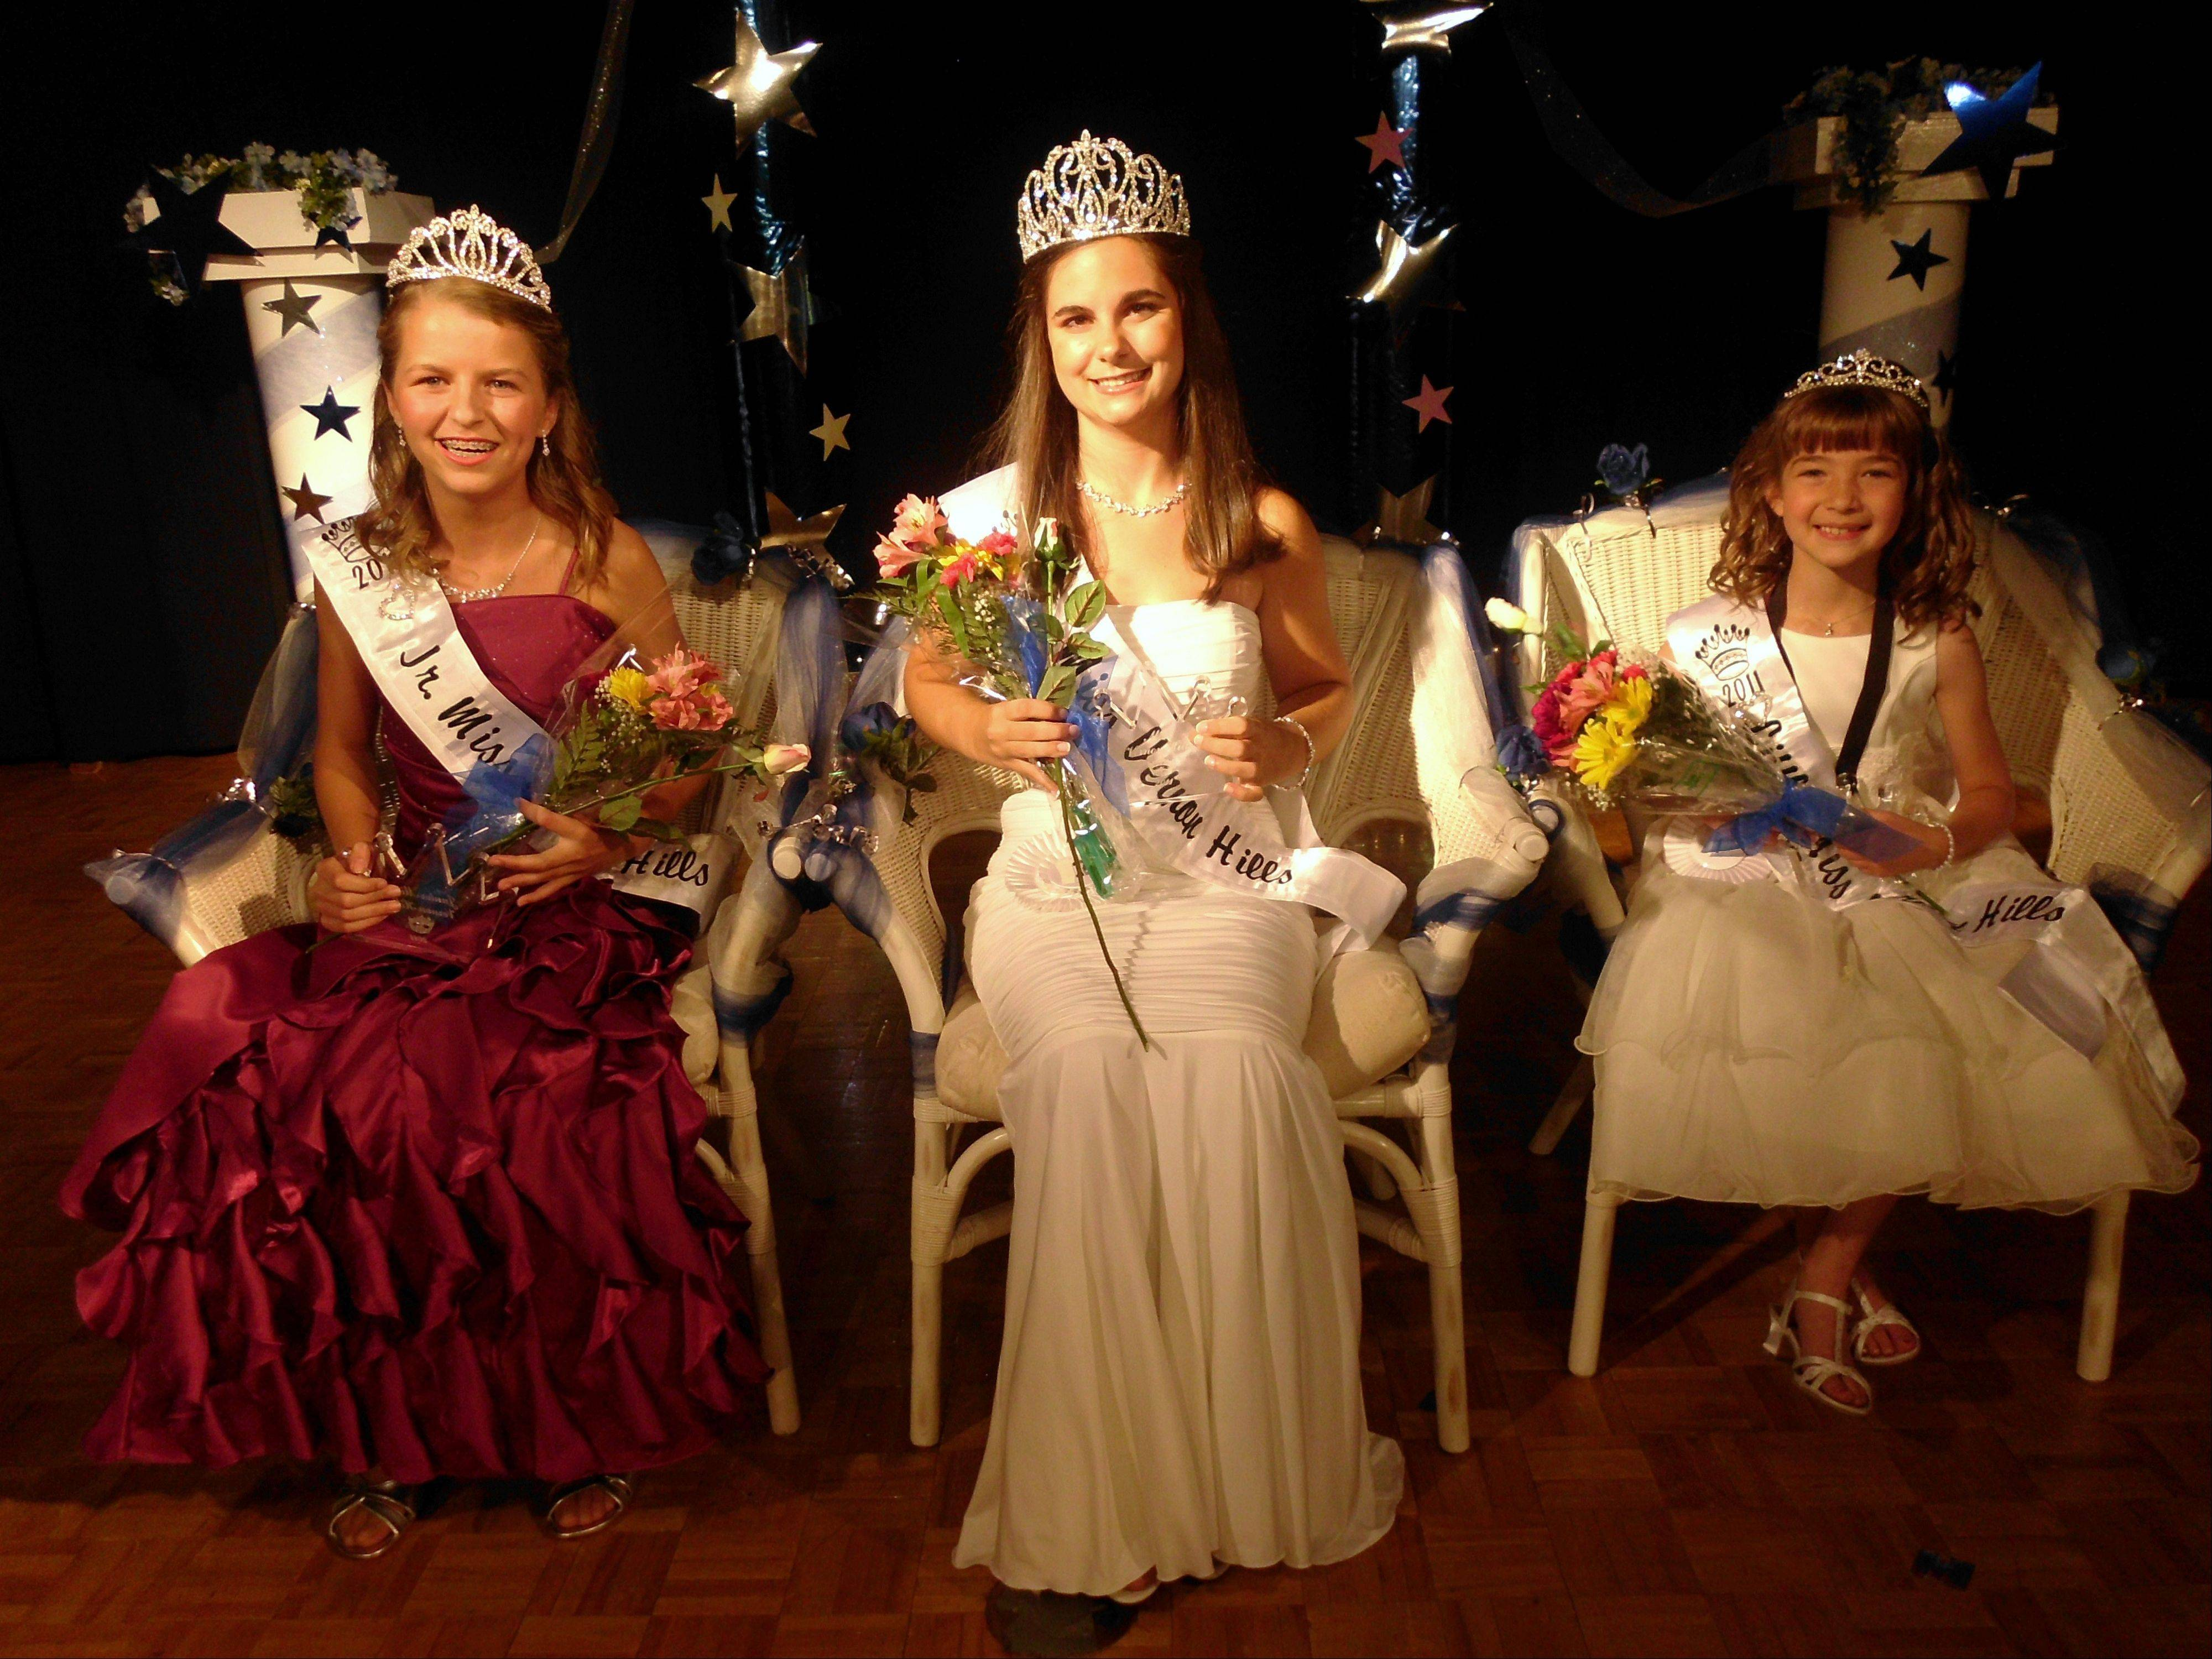 The 2011 Vernon Hills pageant winners are, from left, Junior Miss Grace Christensen, Miss Vernon Hills Cami Christopulos and Little Miss Madisyn Chiarello.